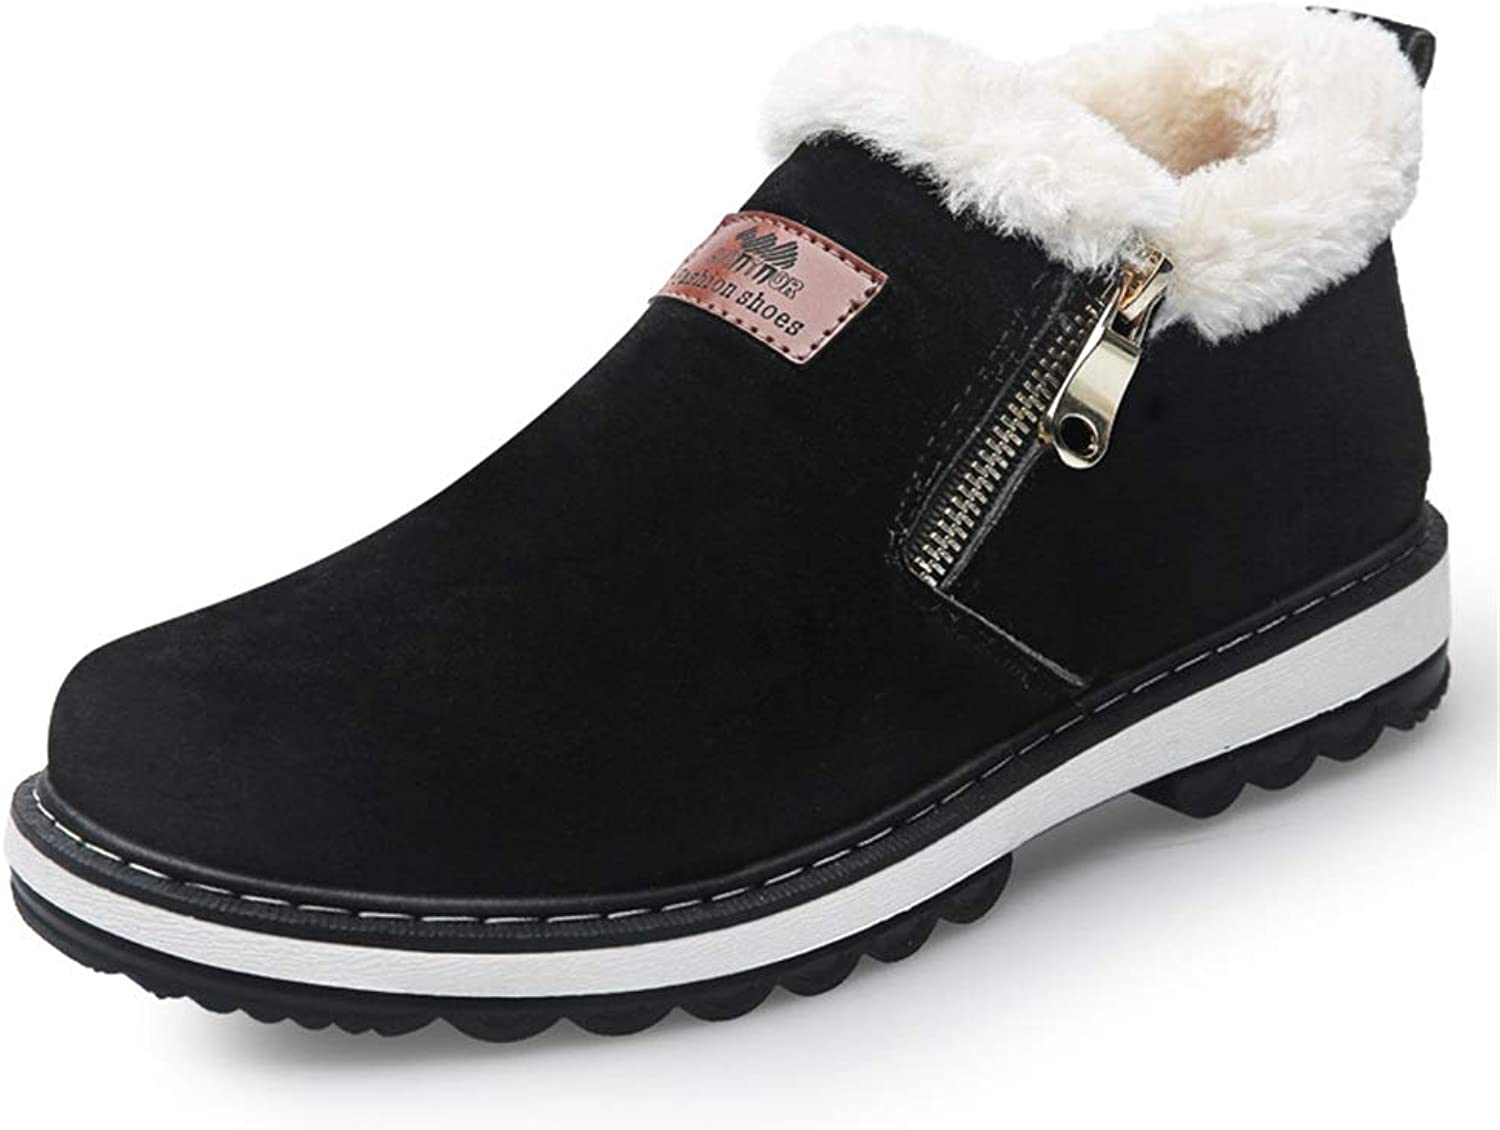 ZHRUI Mens Side Zip Winter Boots Fur Lined Casual Non Slip Breathable Durable Boots (color   Black, Size   UK 8)